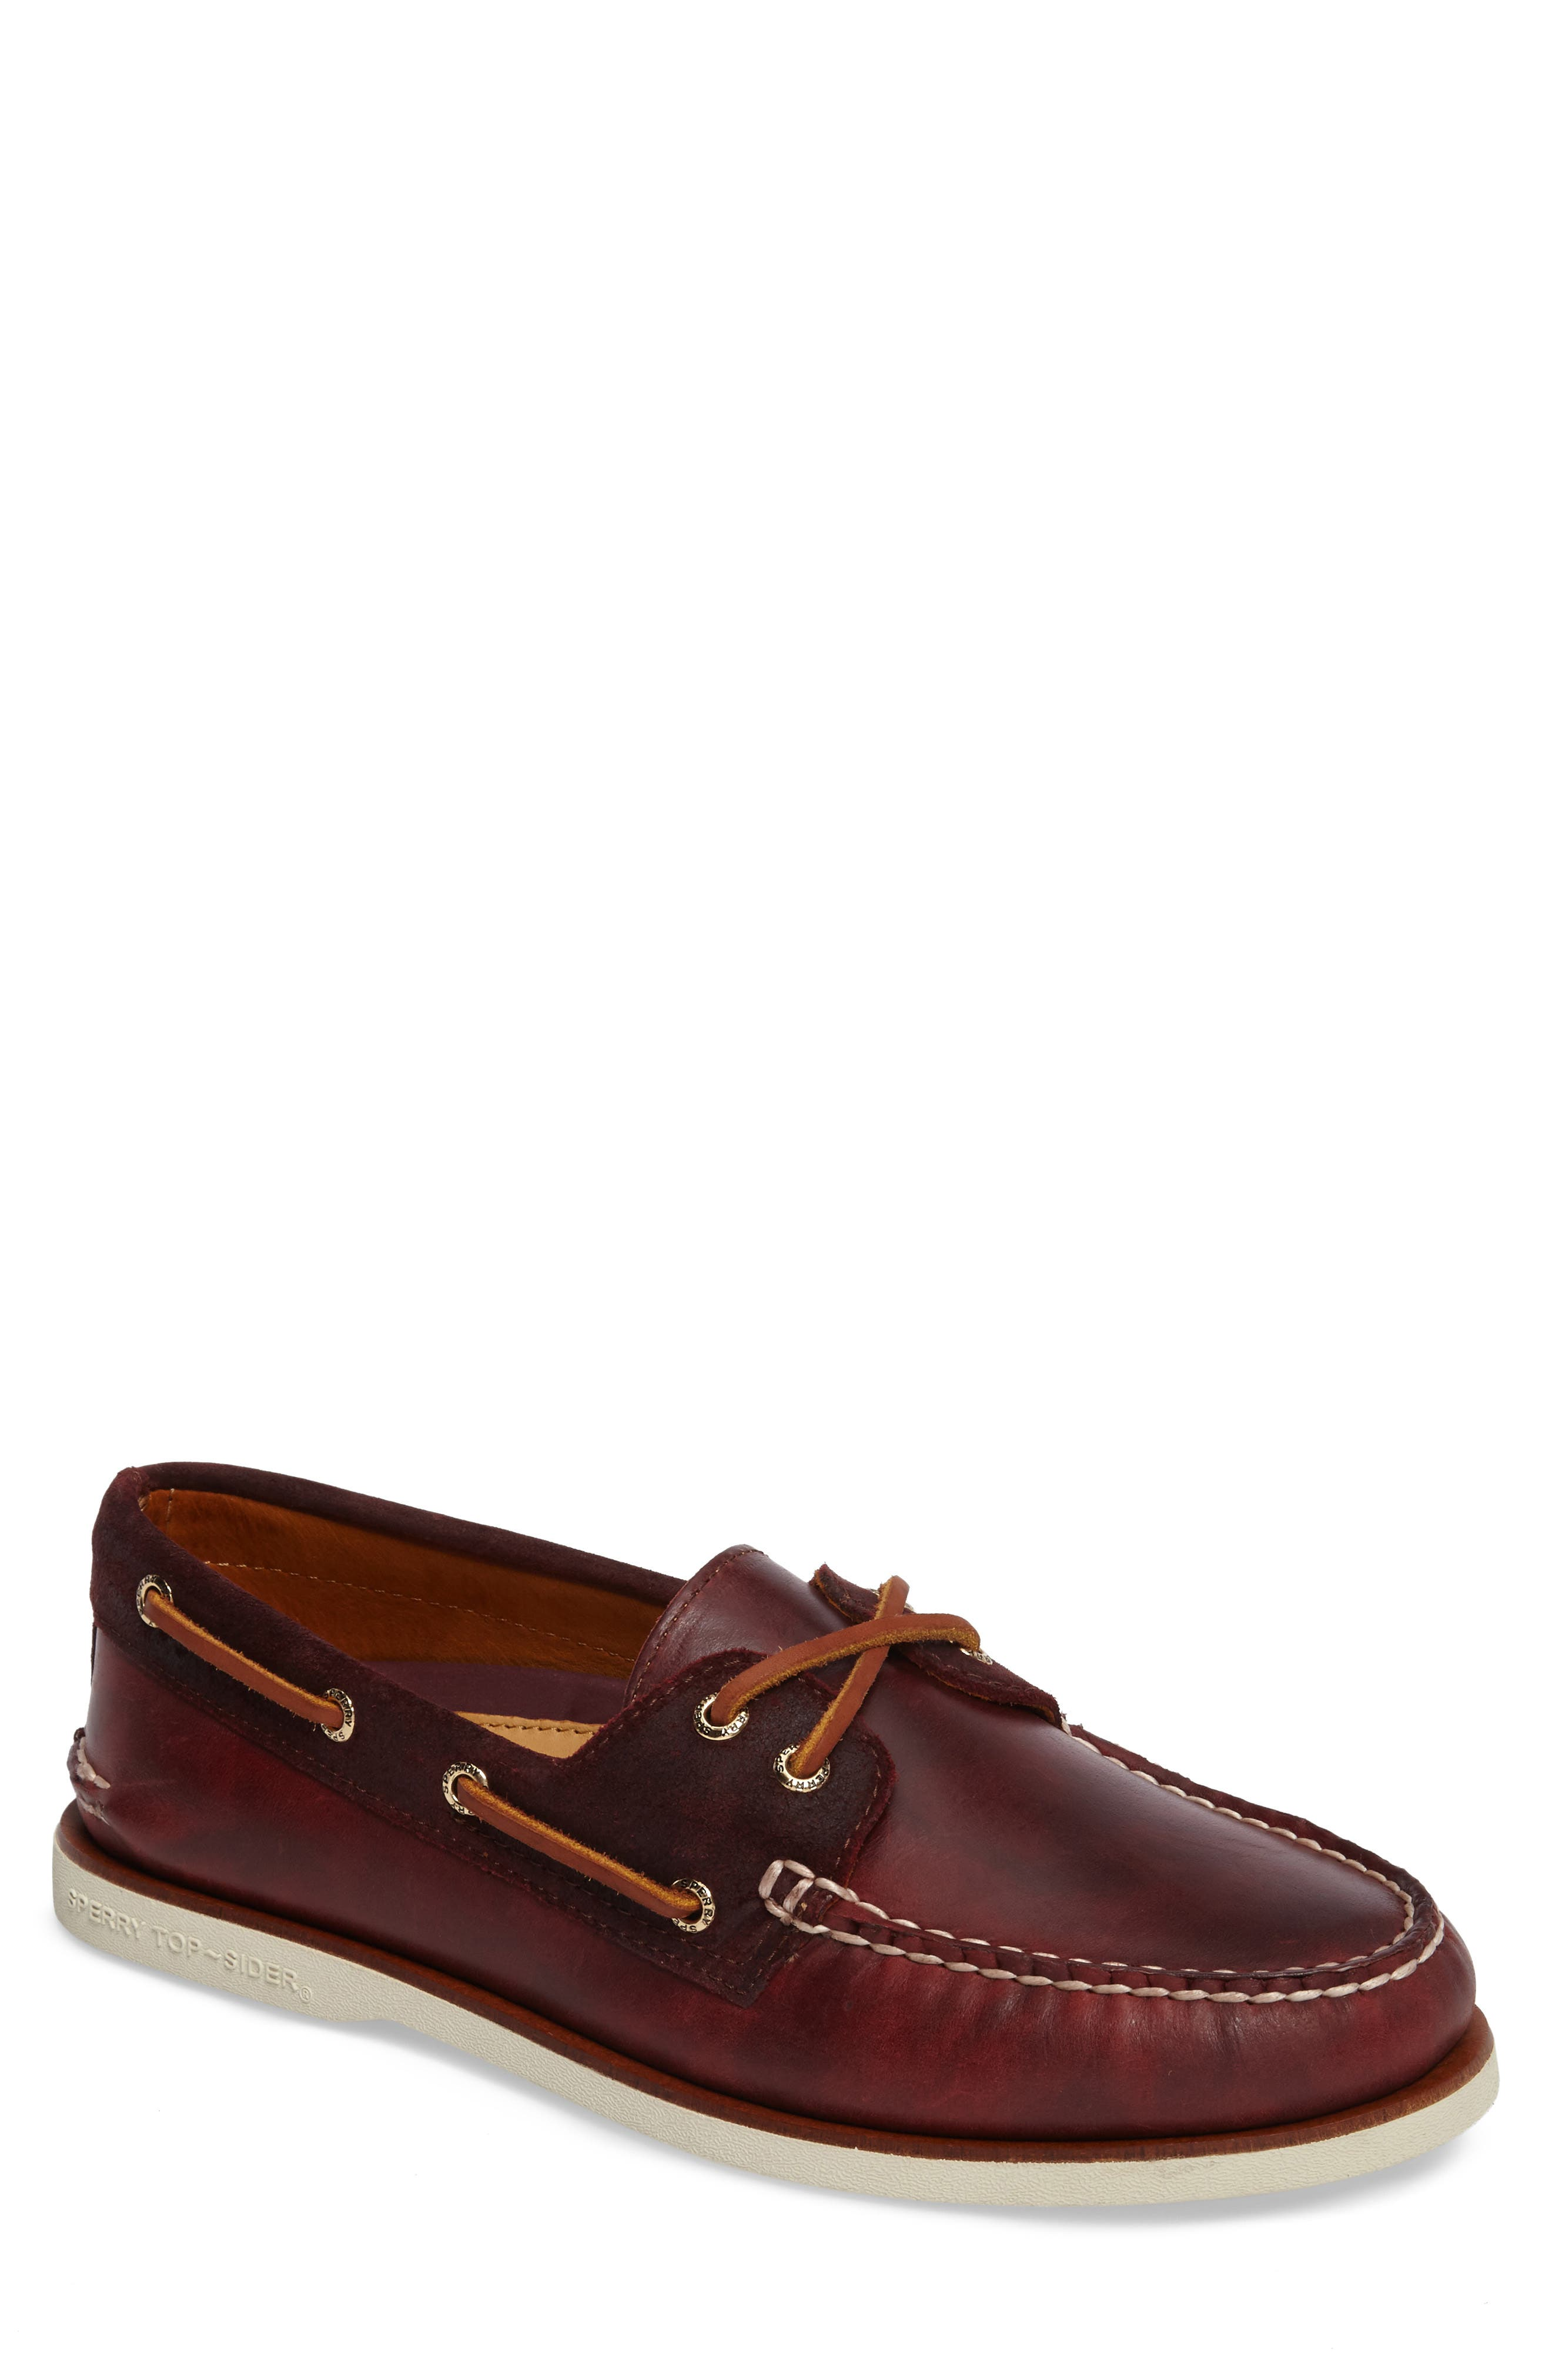 Gold Cyclone Boat Shoe,                         Main,                         color, 931